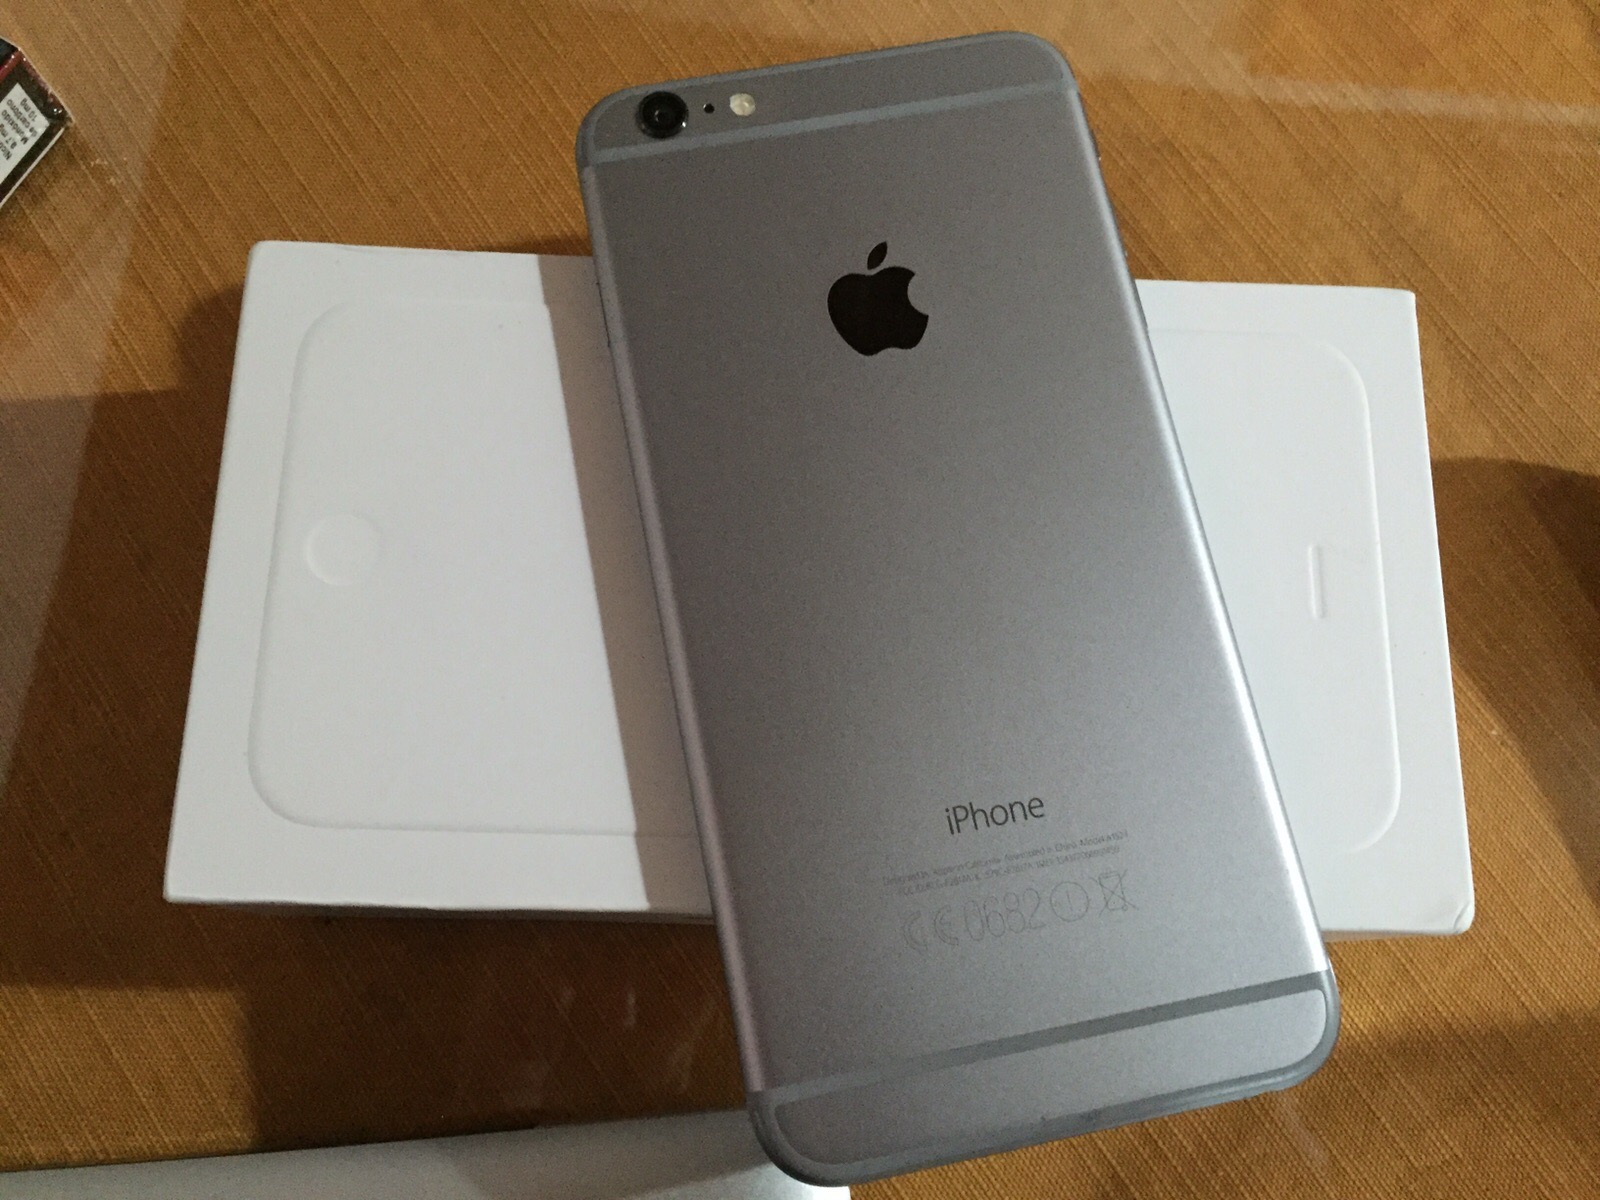 venta iphone 6 plus 16gb gris espacial libre fundas y ...